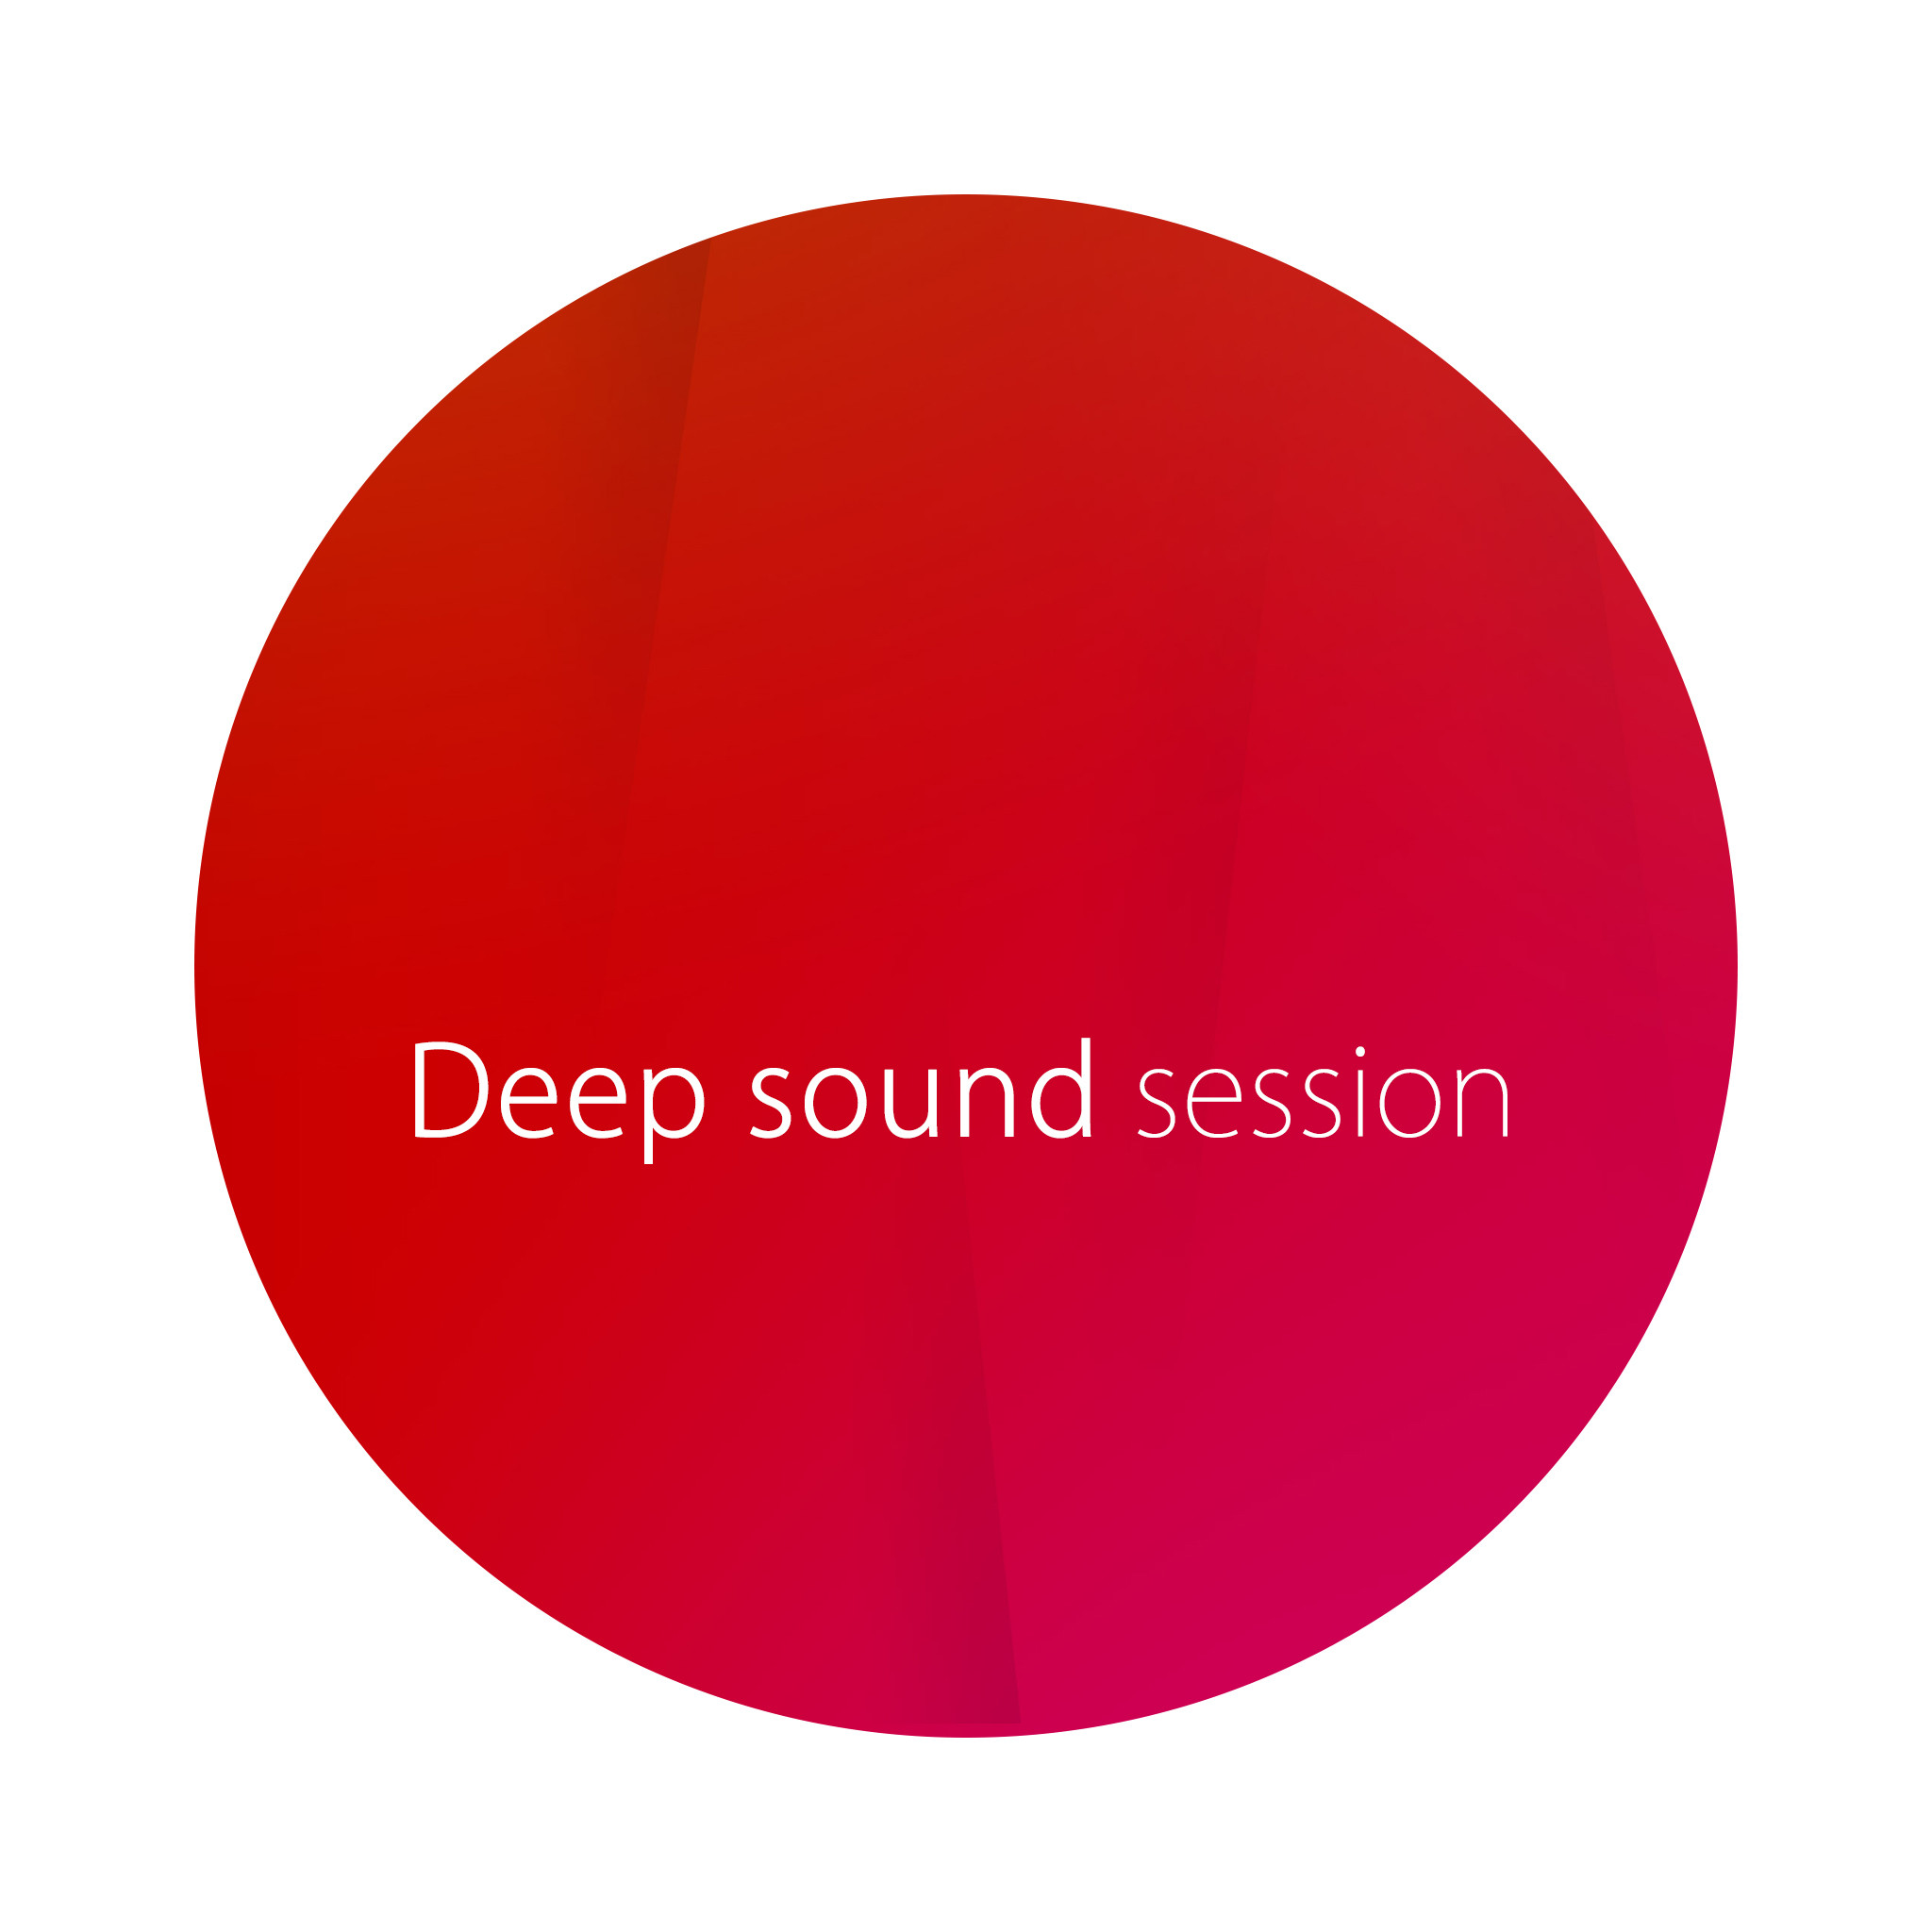 Deep sound session